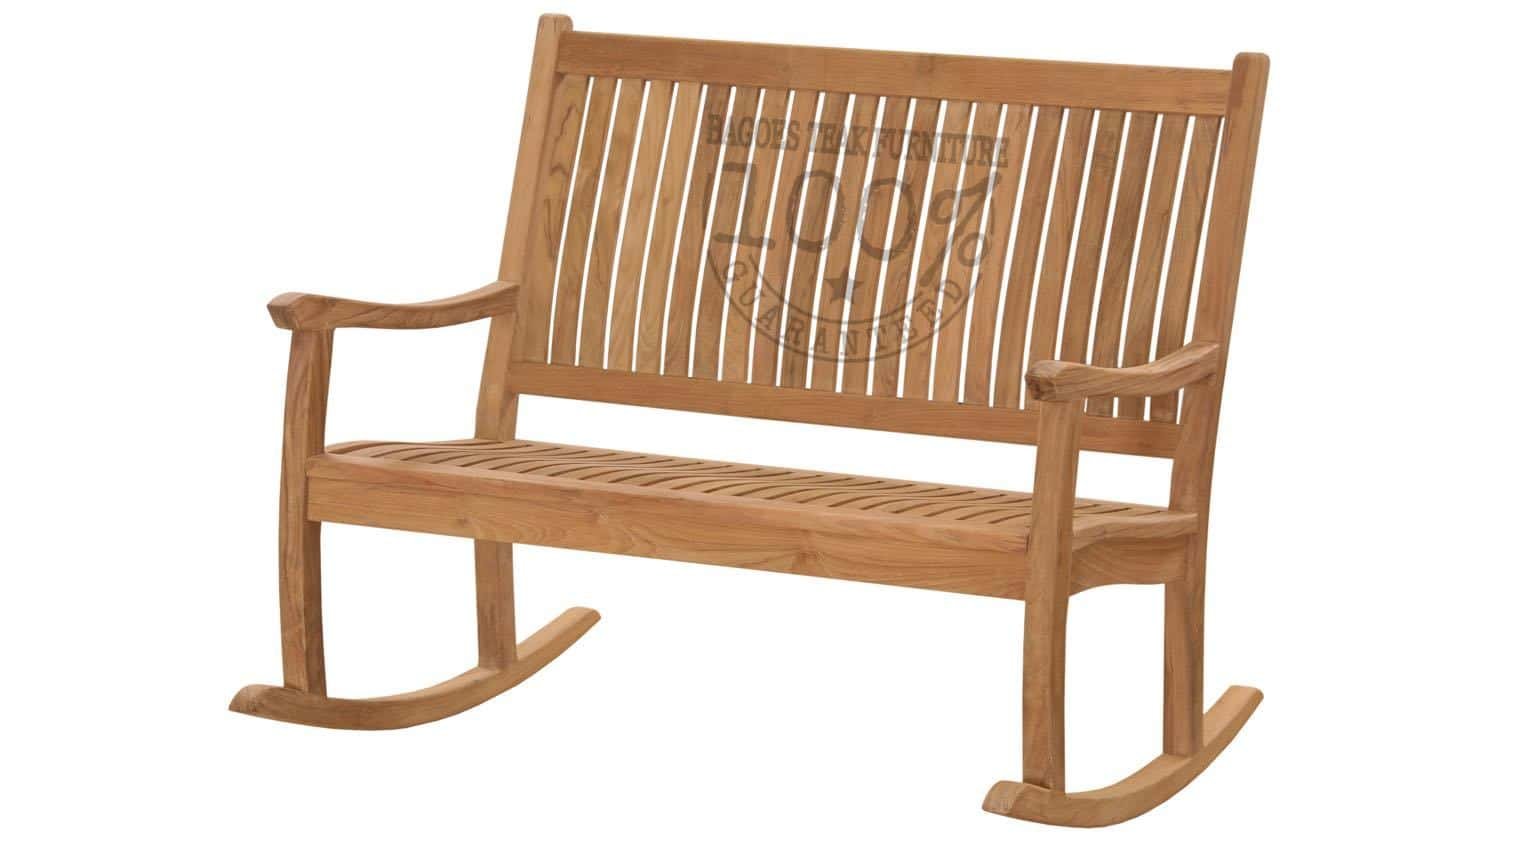 Bagoes Teak Garden Indonesia Furniture Manufacturers